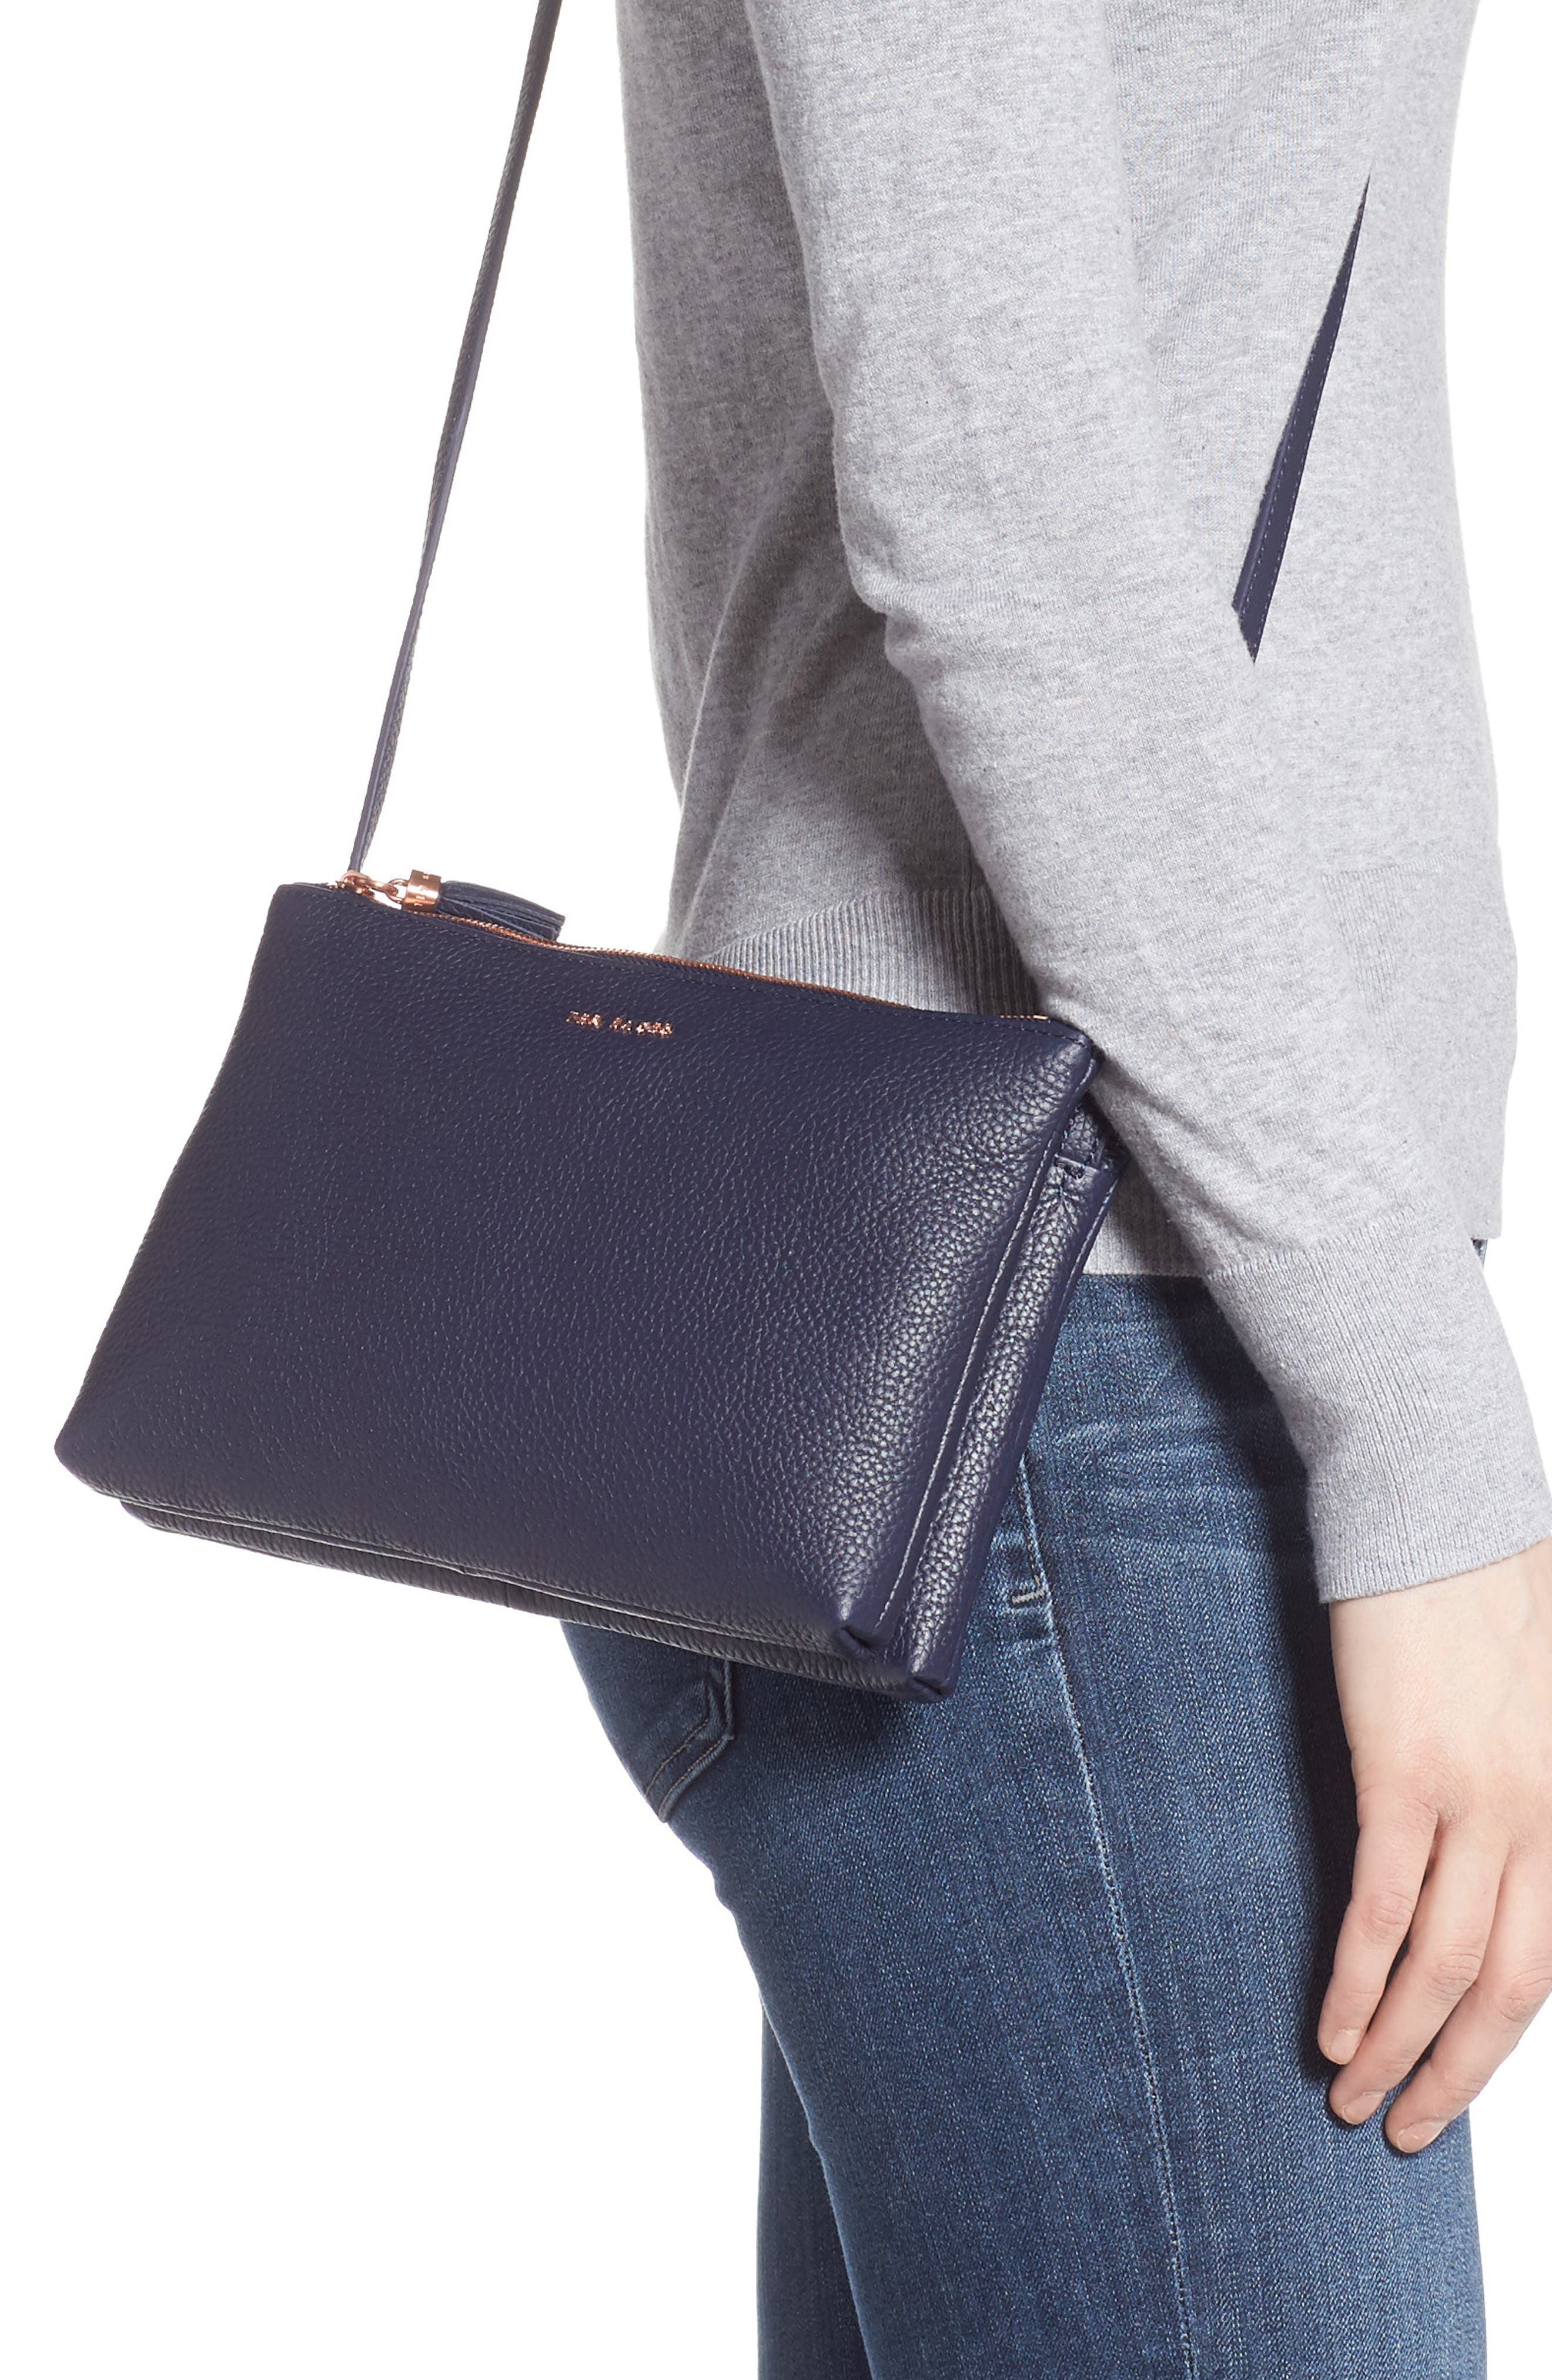 TED BAKER LONDON, Maceyy Double Zip Leather Crossbody Bag, Alternate thumbnail 2, color, NAVY